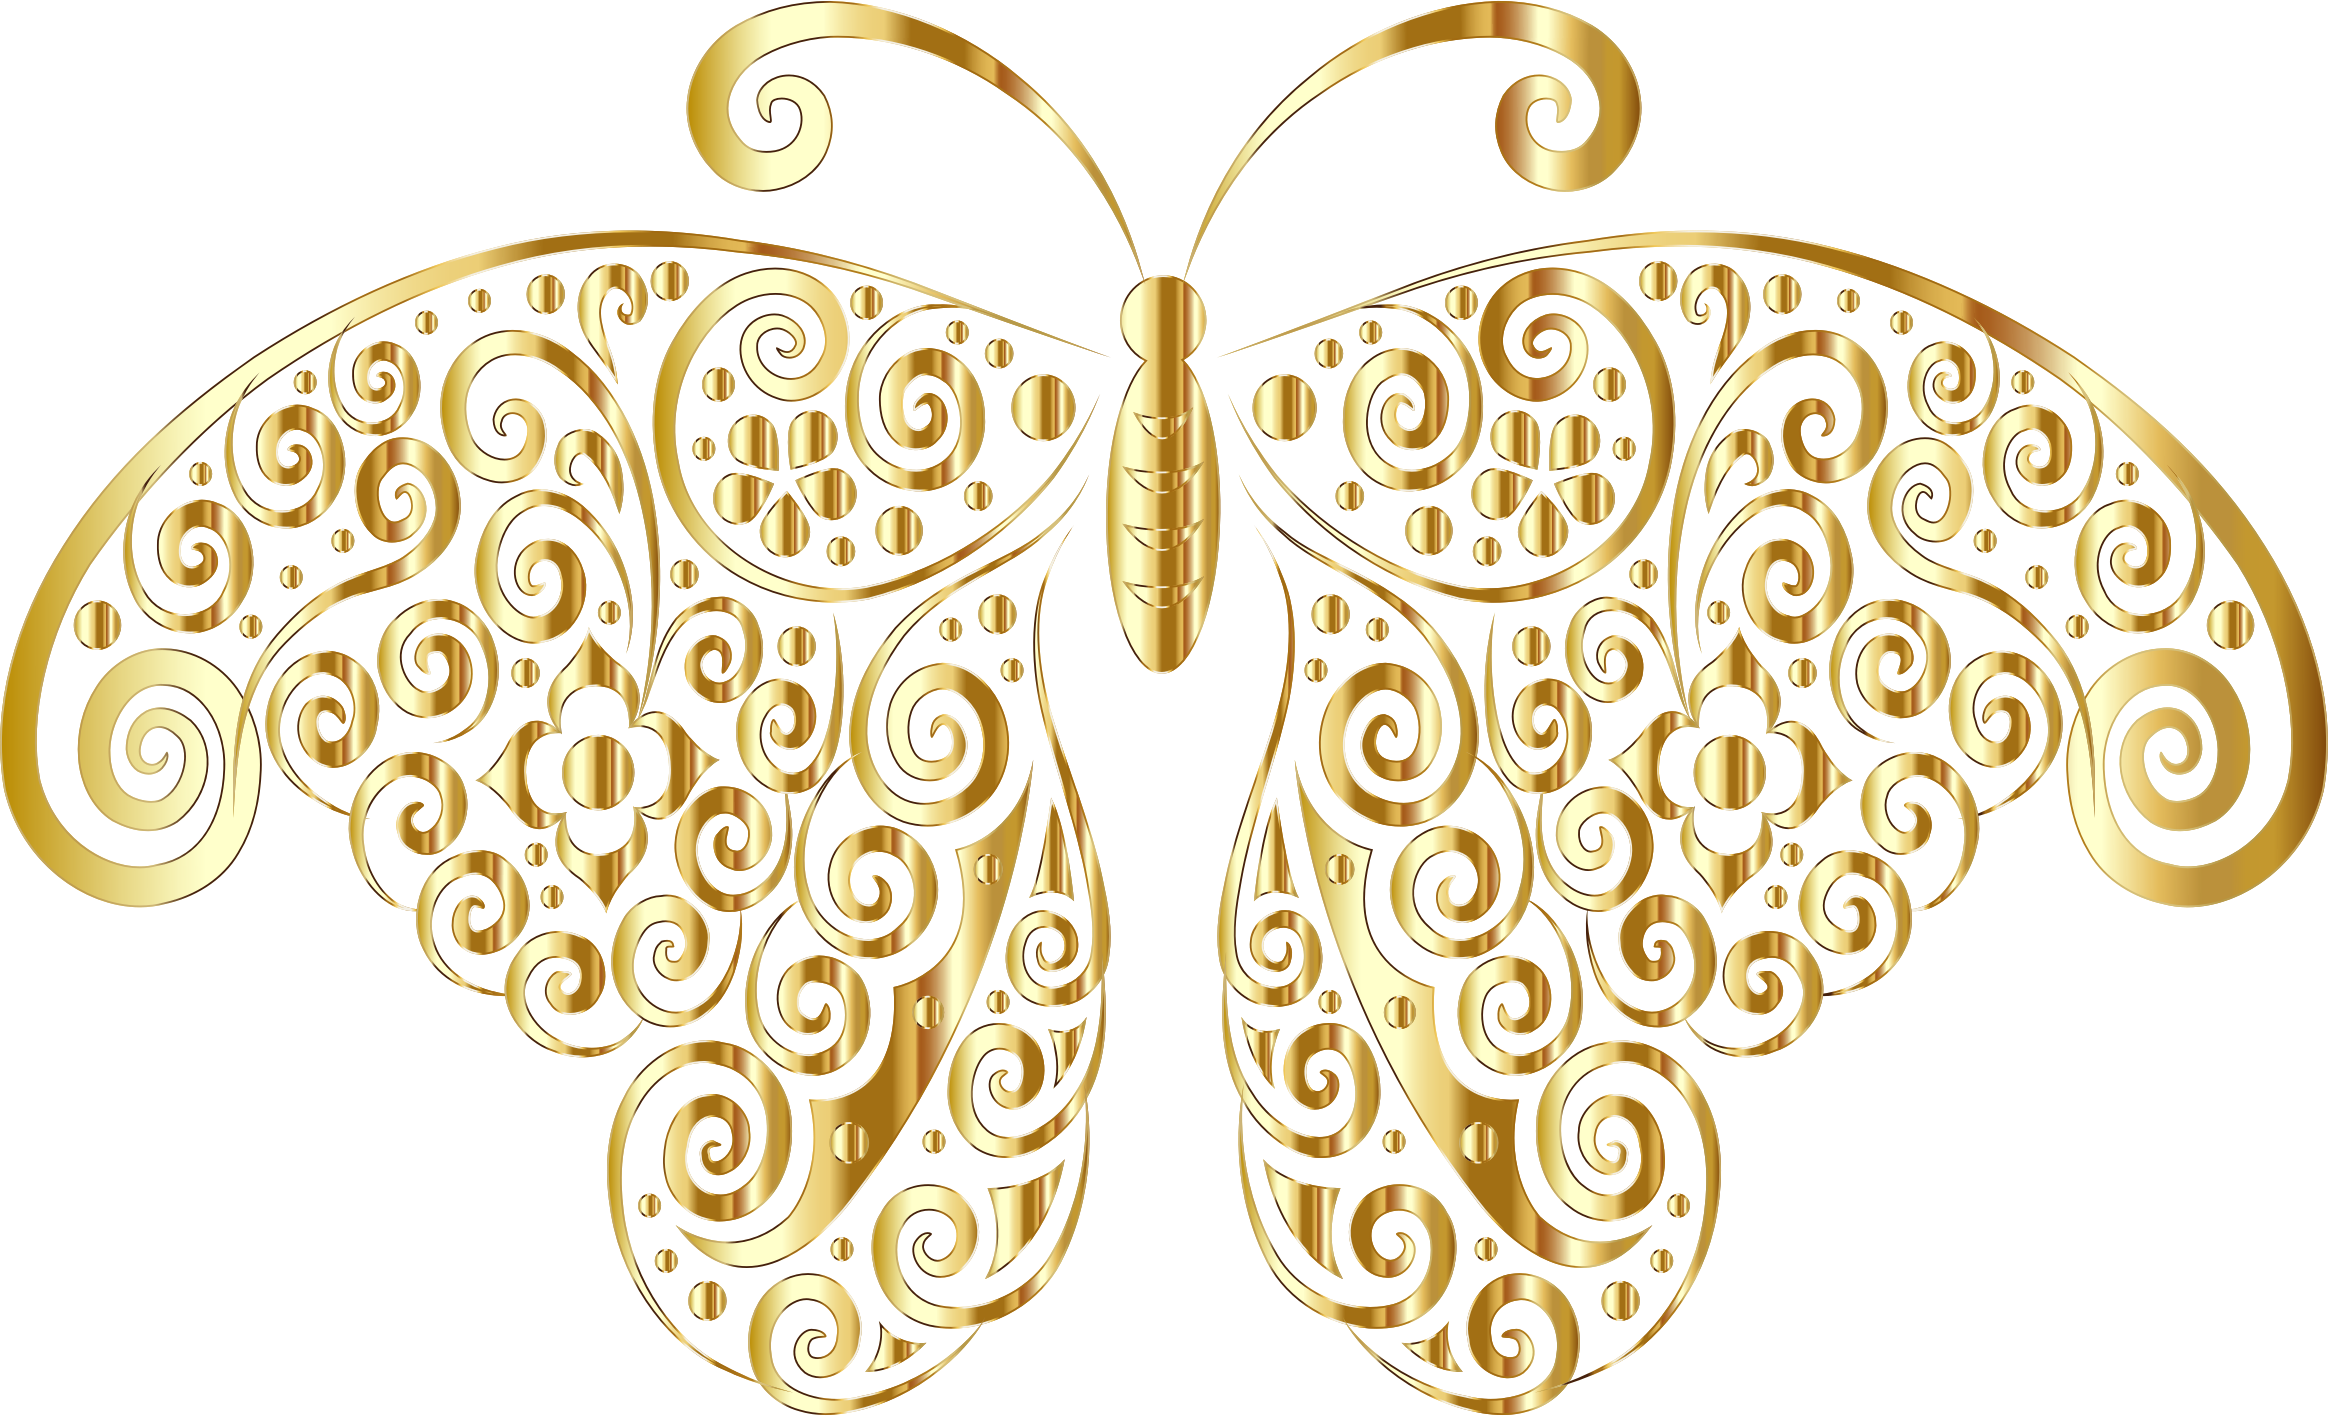 Gold Floral Flourish Butterfly Silhouette No Background by GDJ